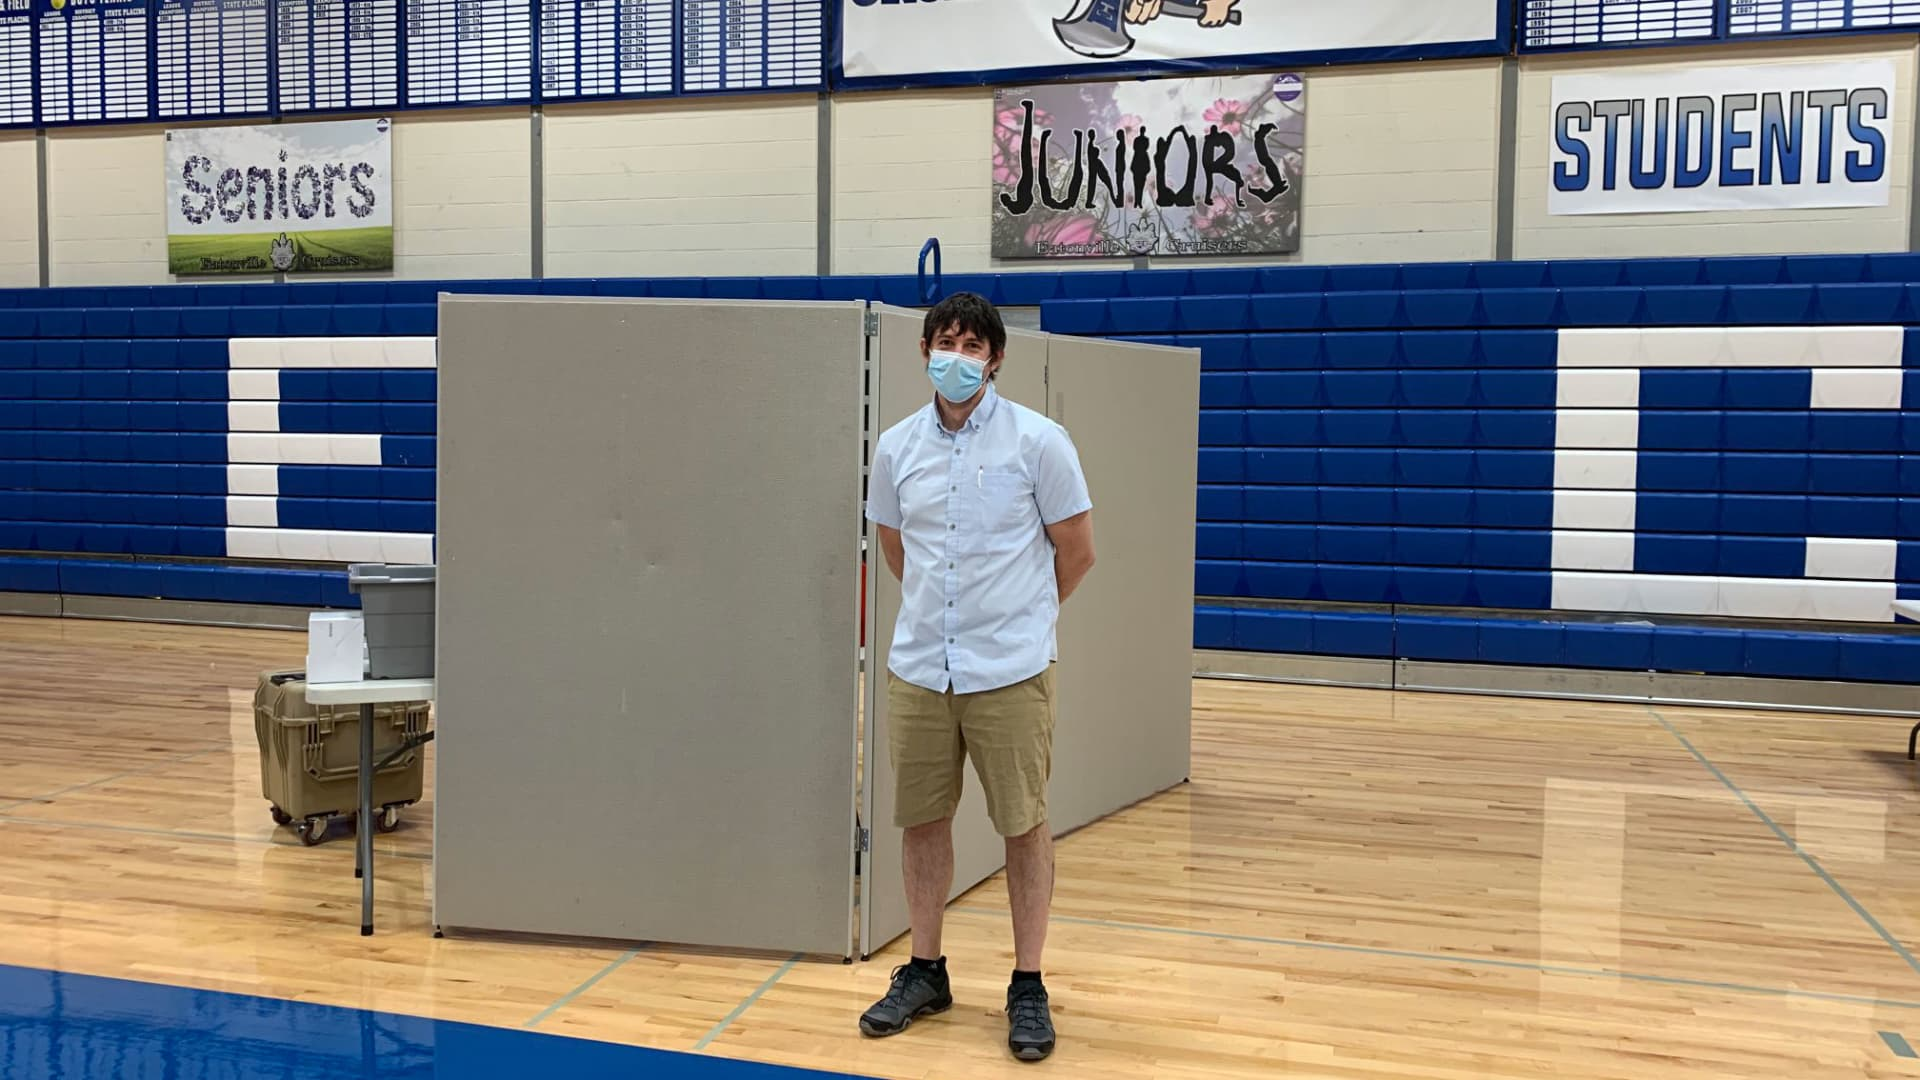 The Eatonville School District in Washington state hosted a vaccination clinic for students soon after eligibility expanded to include everyone over the age of 16.